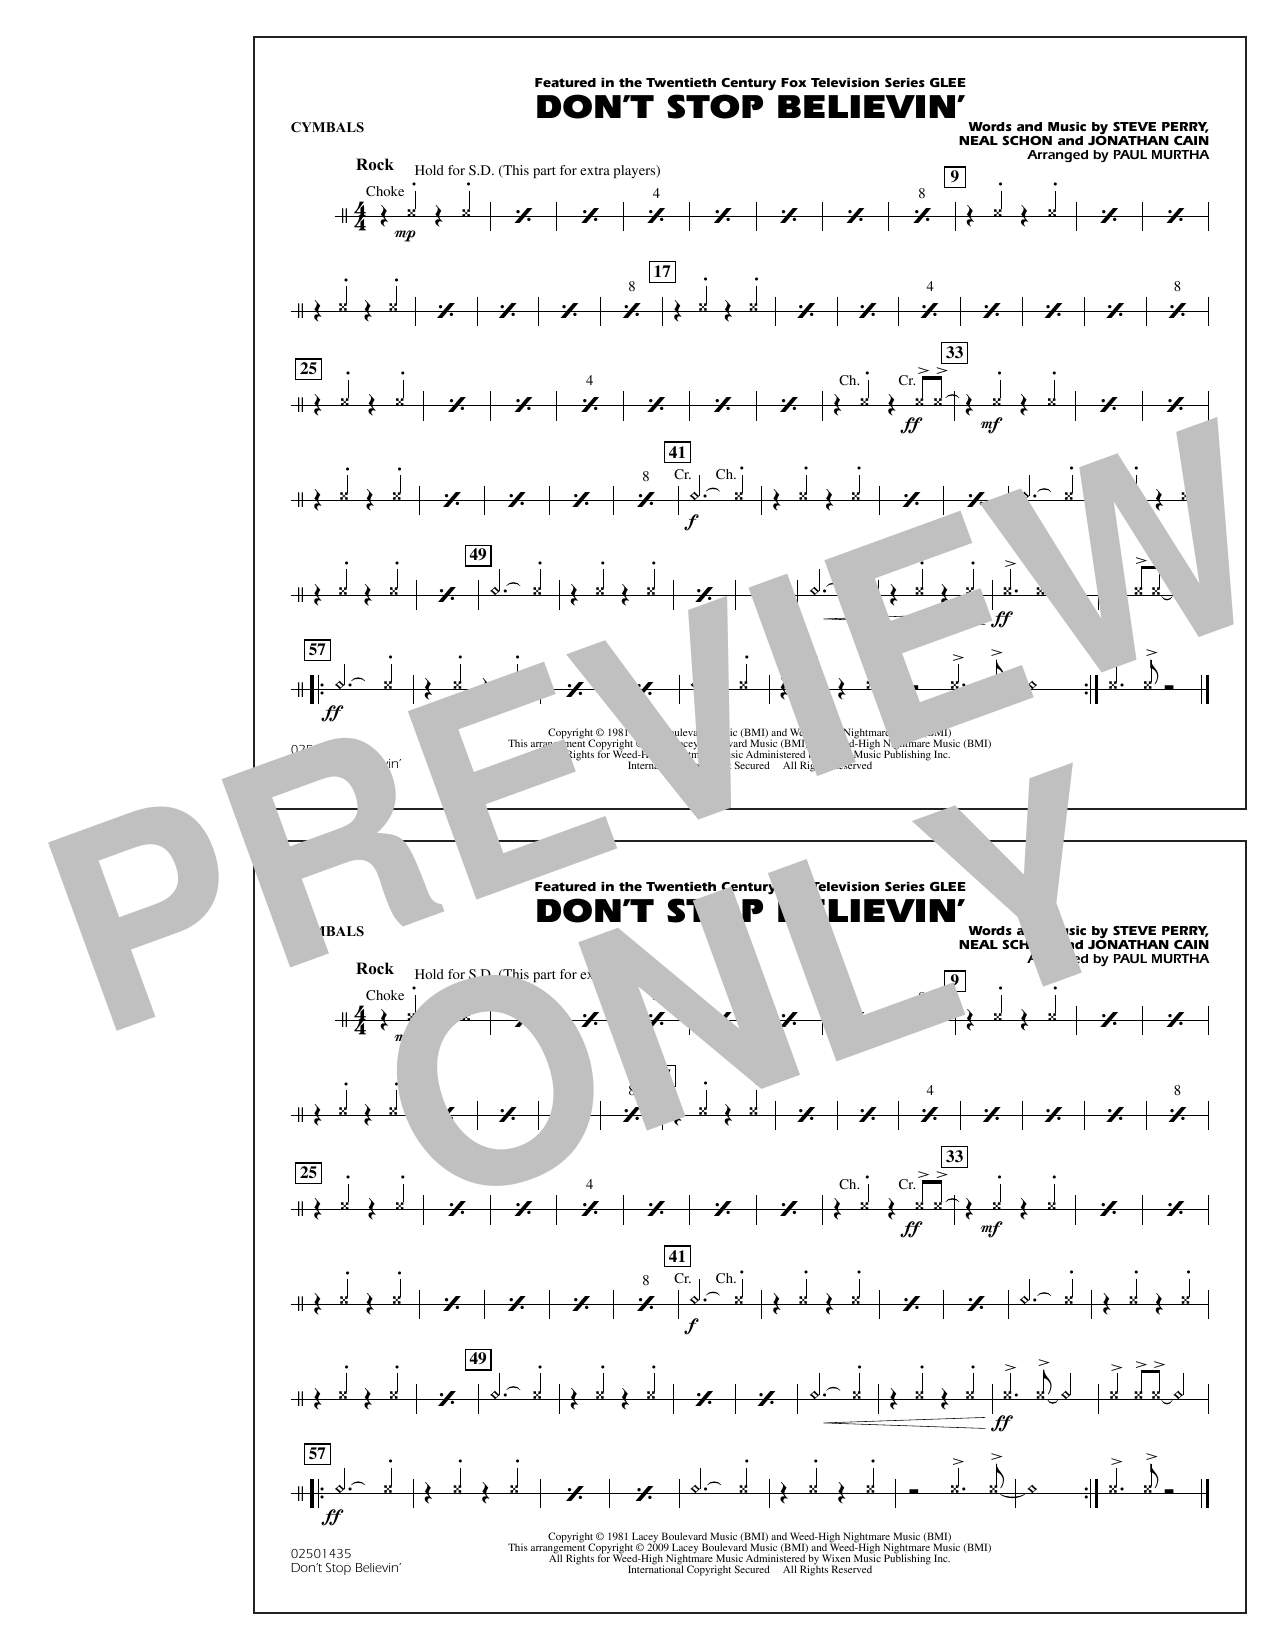 Paul Murtha Don't Stop Believin' - Cymbals sheet music notes and chords. Download Printable PDF.